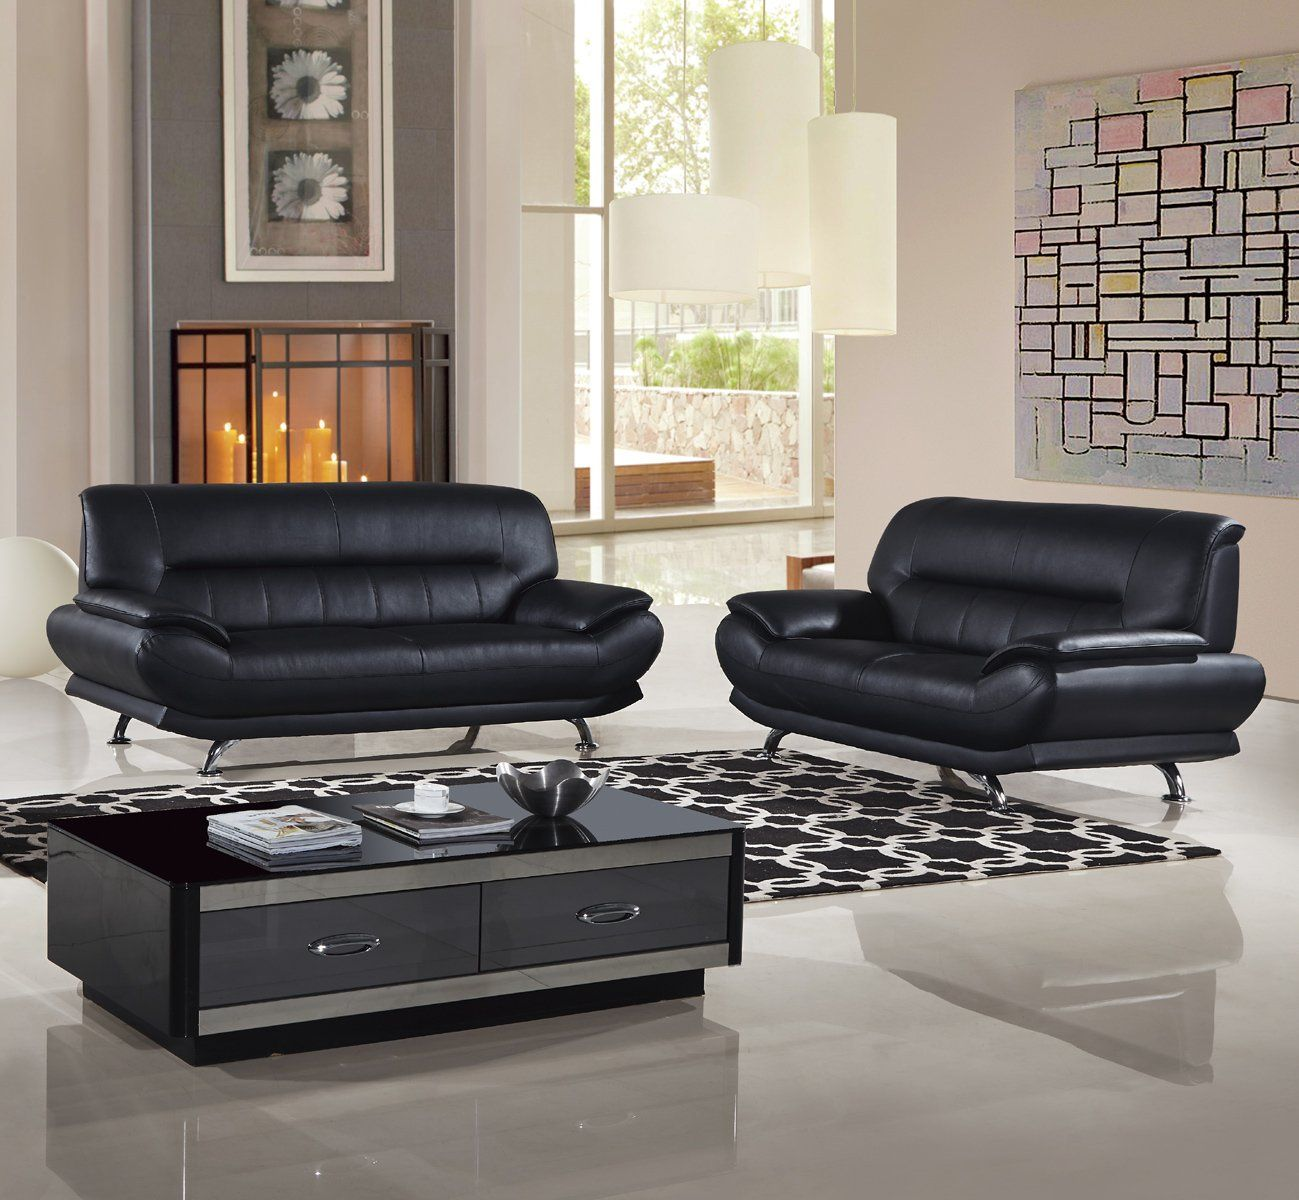 Groovy American Eagle Ek B118 B Modern 2Pcs Black Leather Sofa Set Gmtry Best Dining Table And Chair Ideas Images Gmtryco